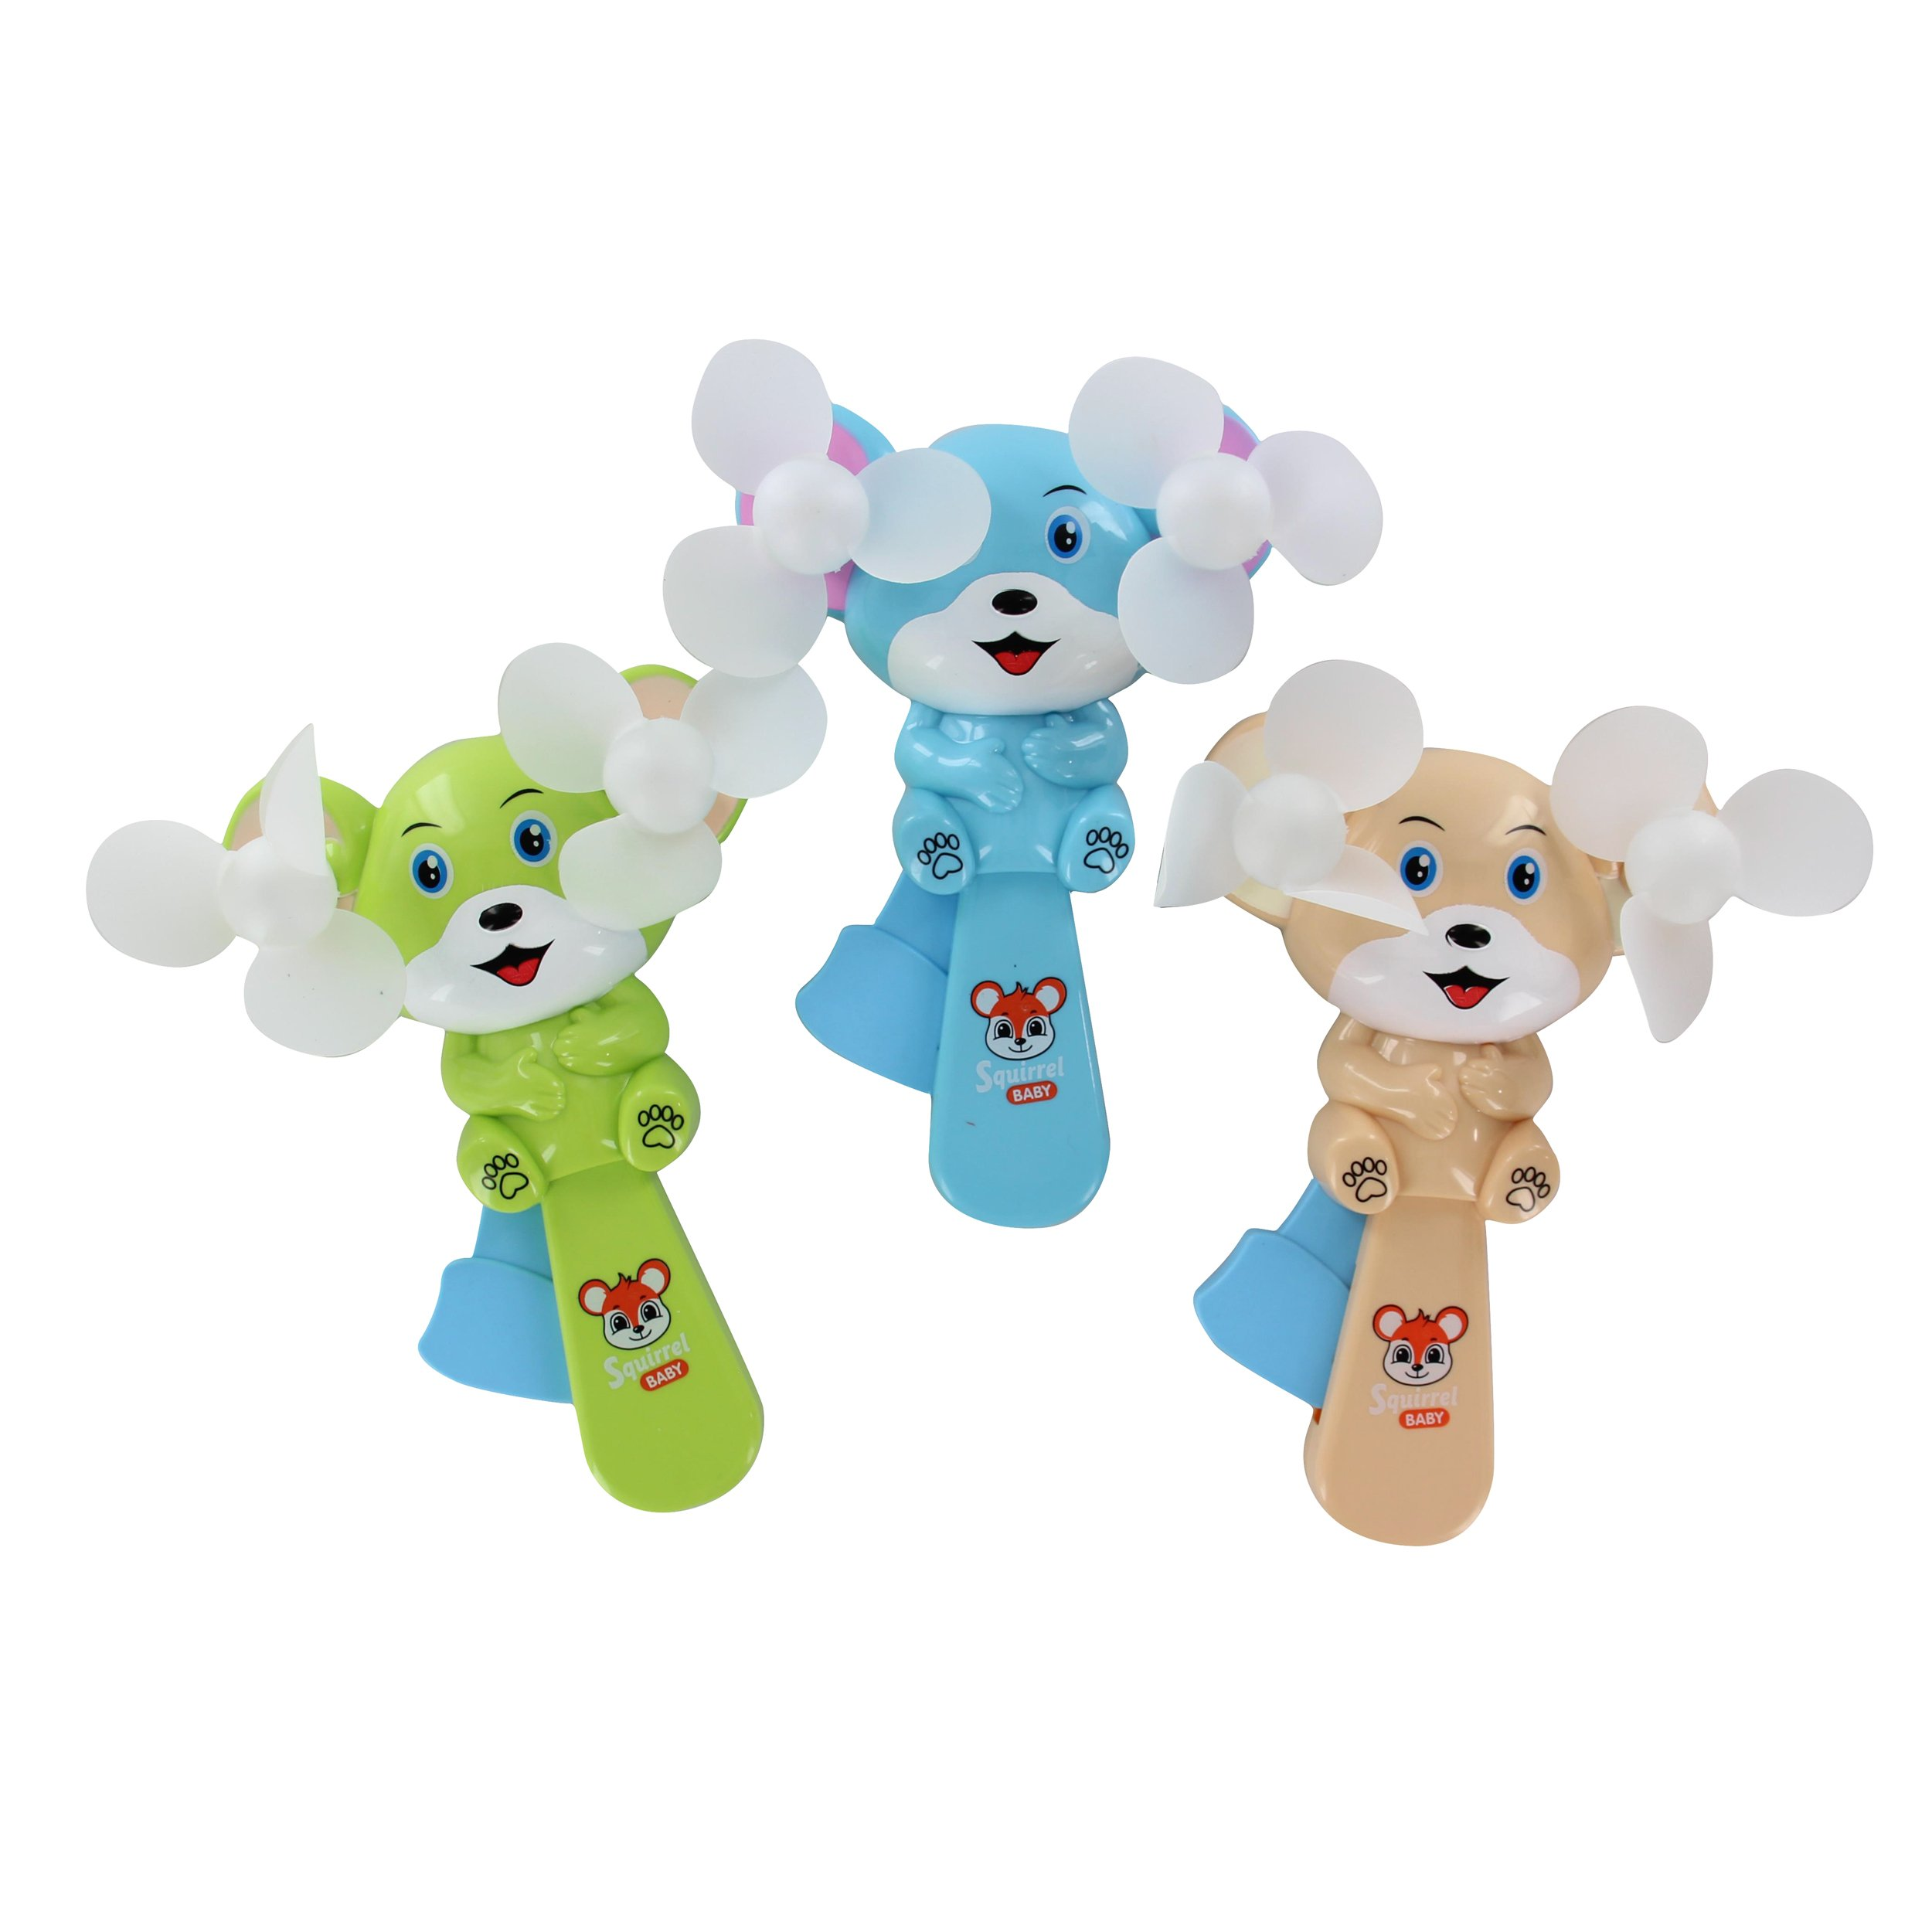 QuStars Valued Pack 3 Portable Hand Press Cooling Cartoon Animal Mini Toy Hand-held Fan (Squirel)